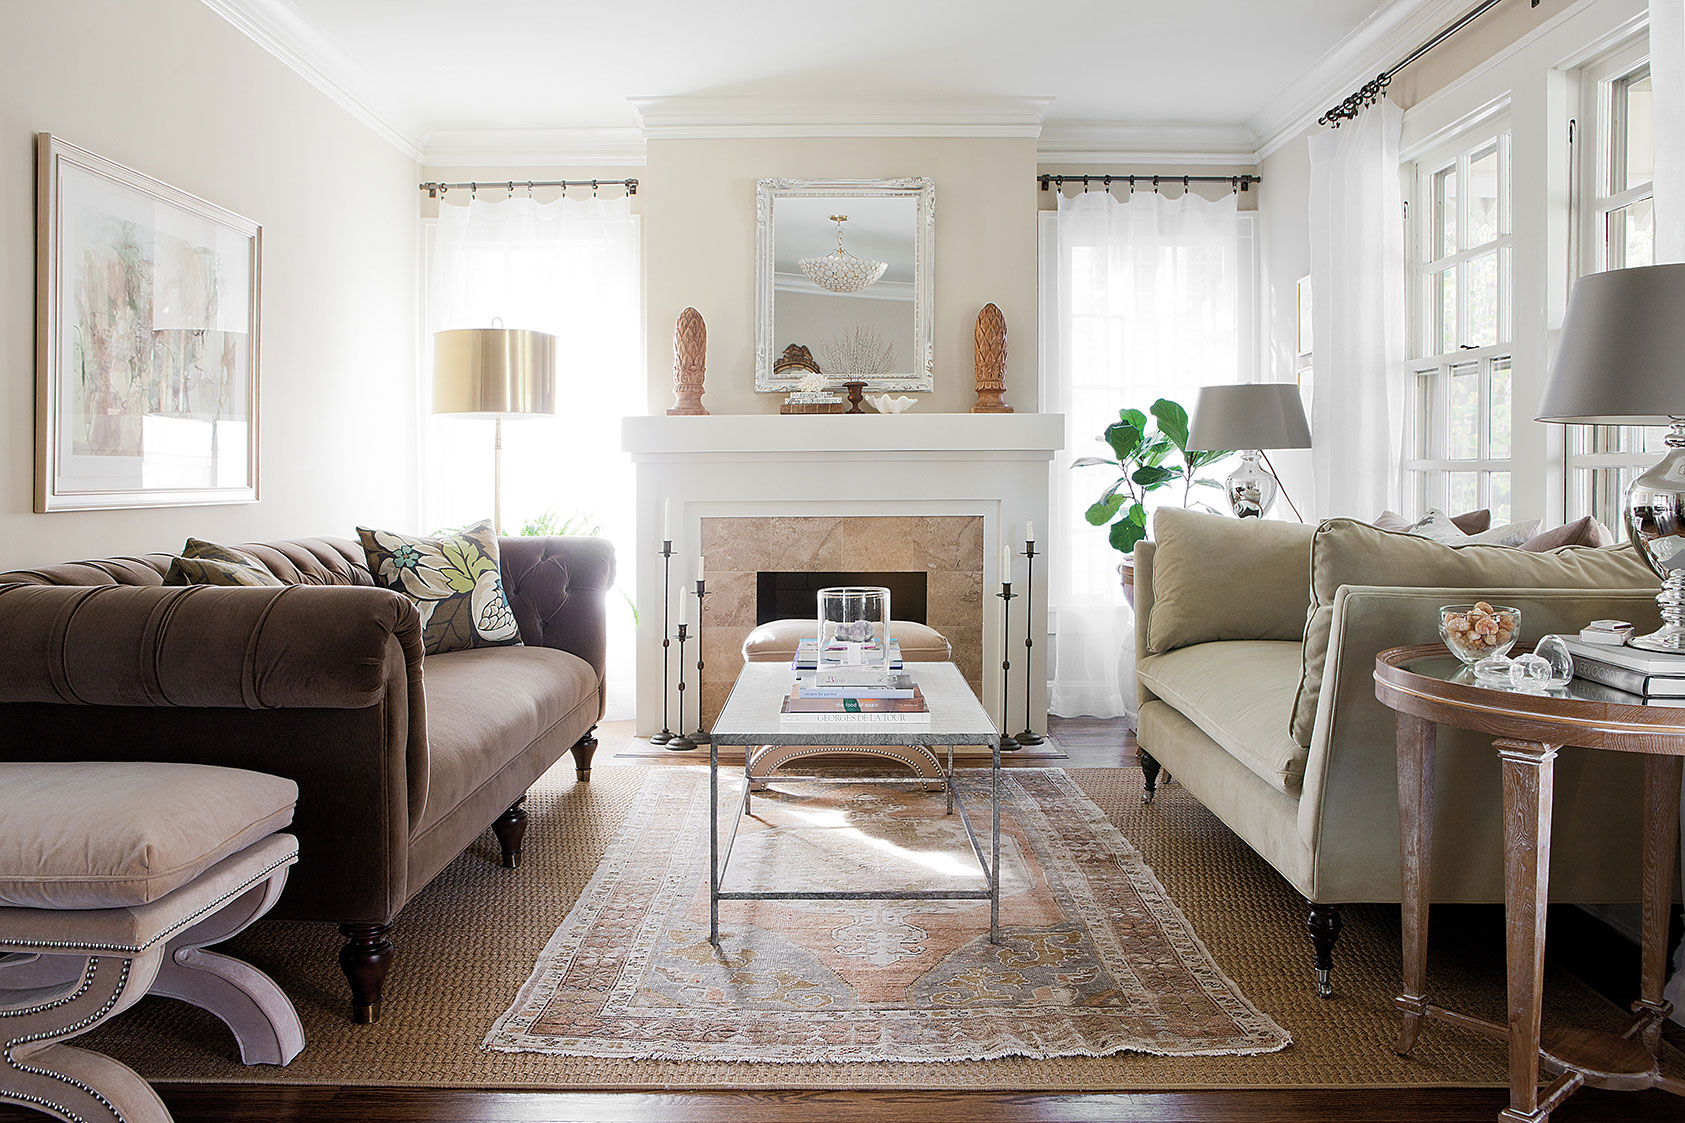 Westwood Hills Bungalow | Amanda Steiner Design | Living Room with Hearth